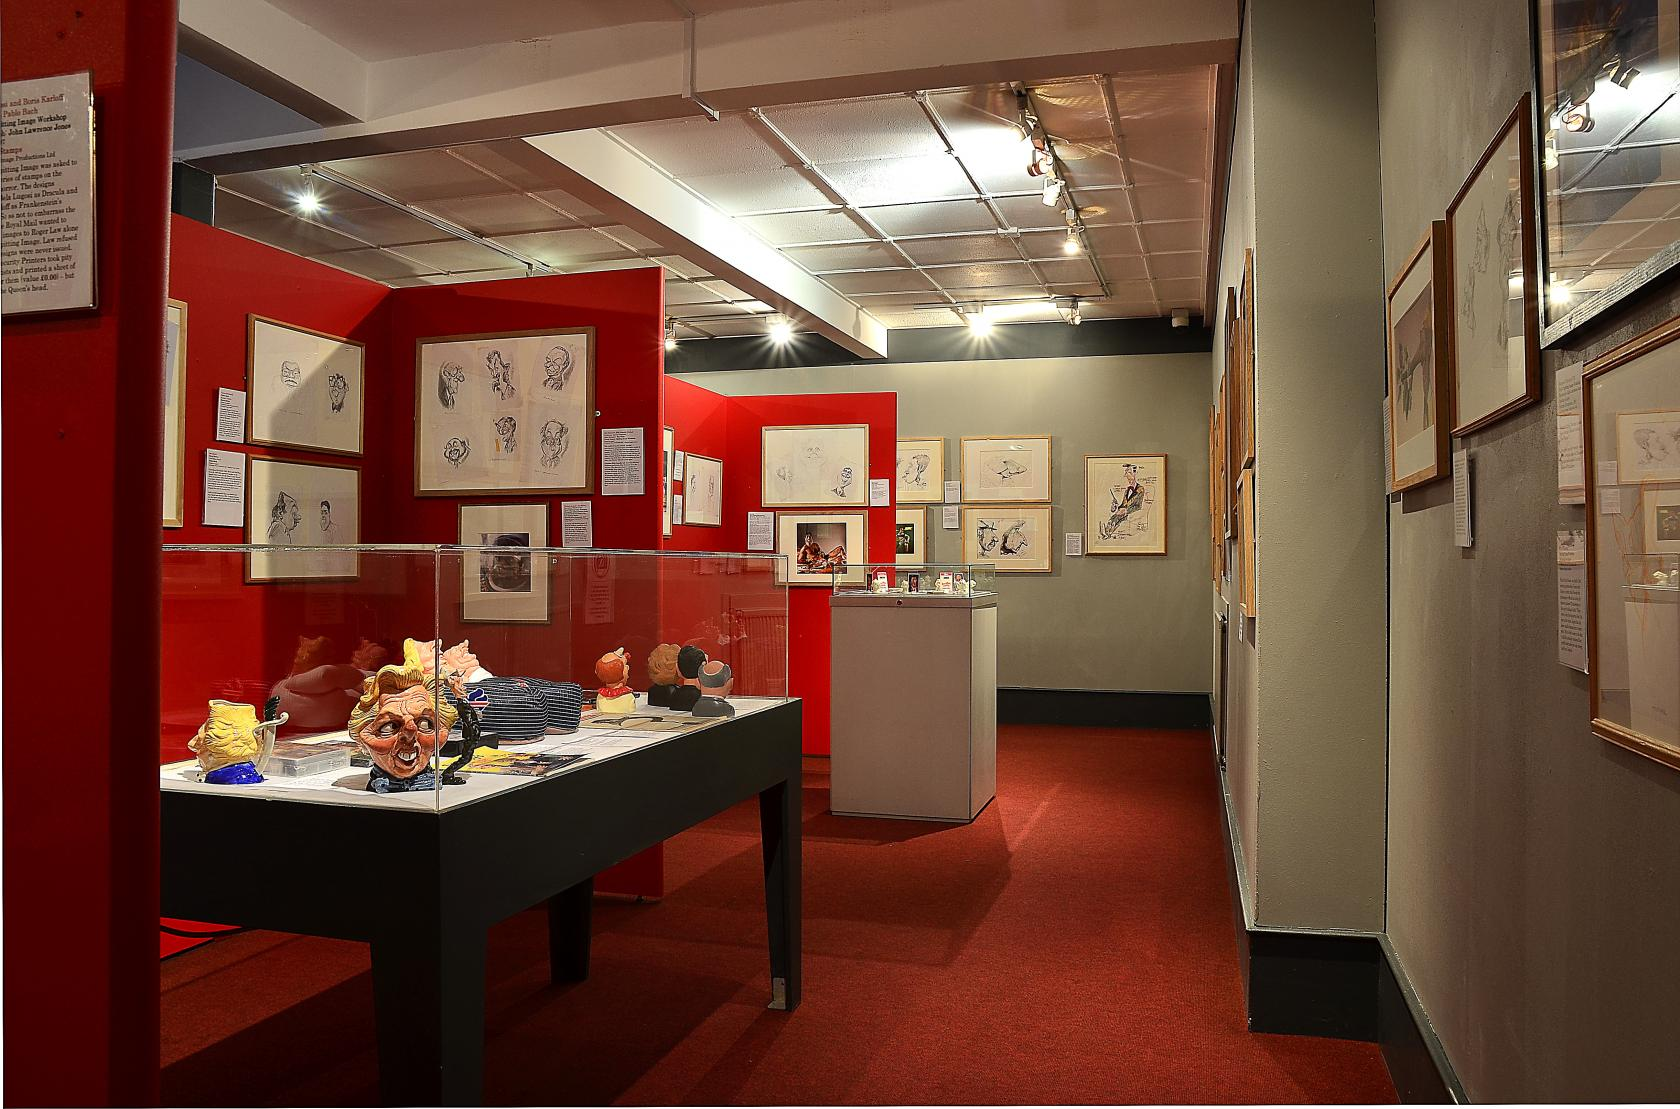 The Cartoon Museum's enormous collection includes 3,000 books and 12,000 pictures, covering three hundred years